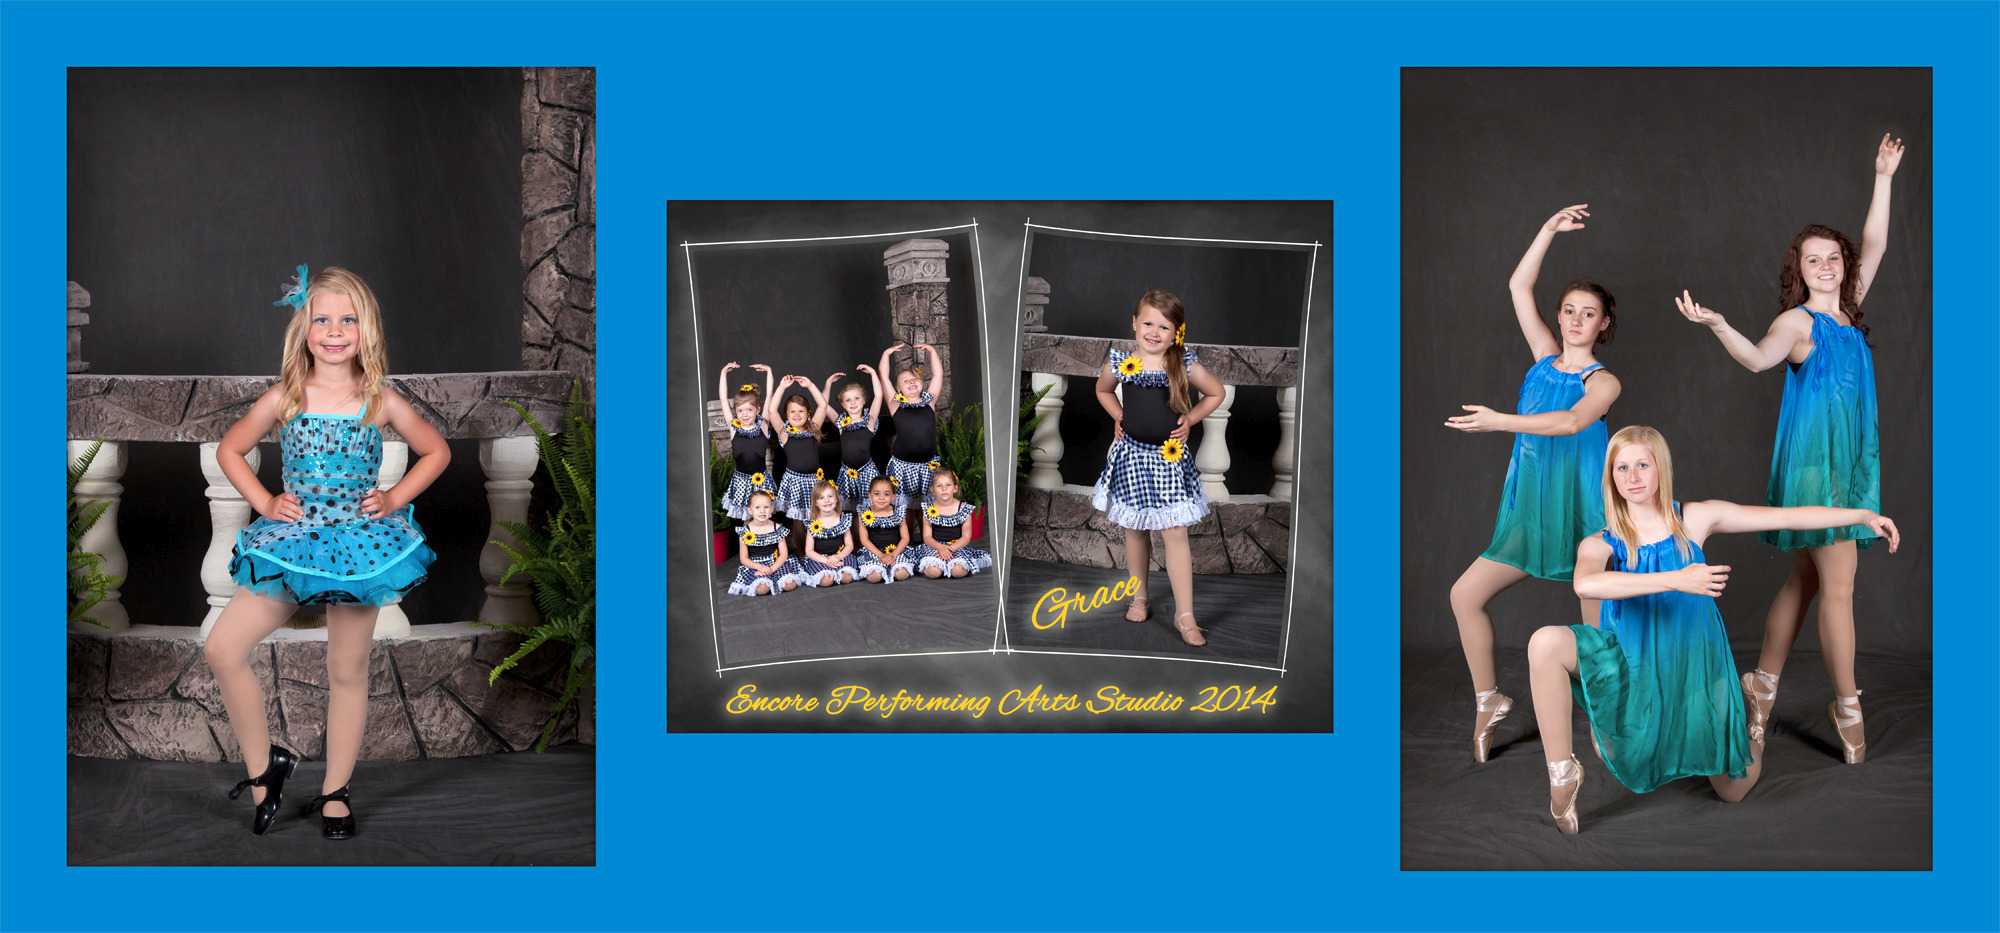 Newborn Photographer, Baby Photographer, Family Pictures, Wedding Portraits, Dance Photographer, Dance Team Photography, Farmington Illinois Photographer, Farmington Illinois Photography